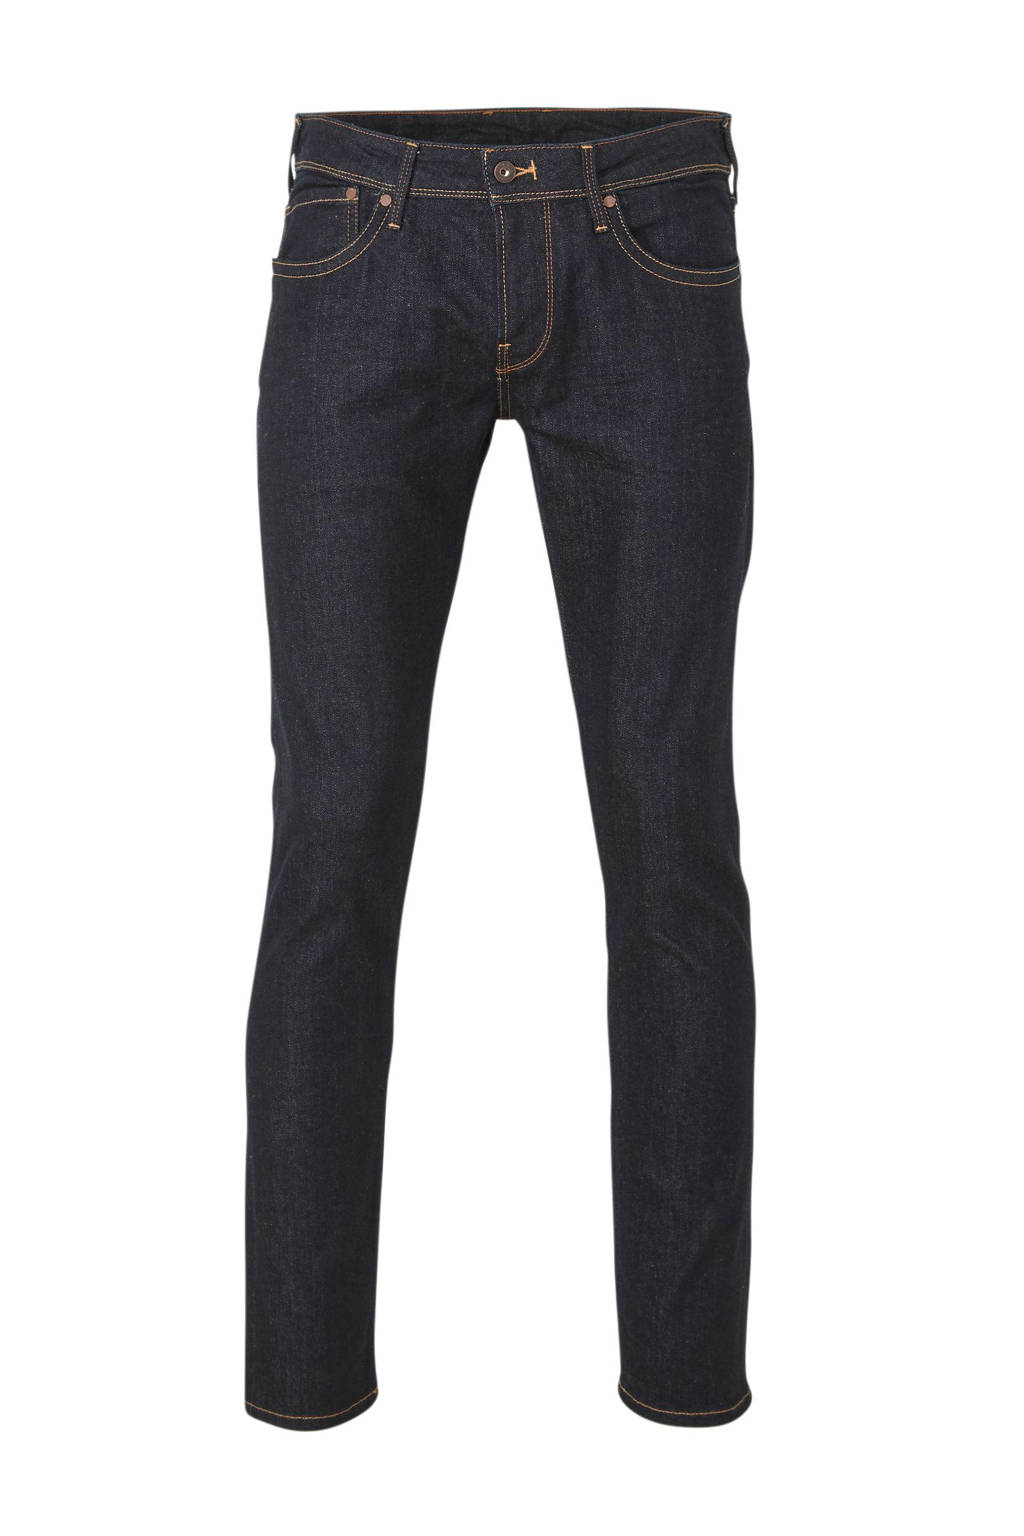 Pepe Jeans slim fit jeans Hatch denim, 000DENIM